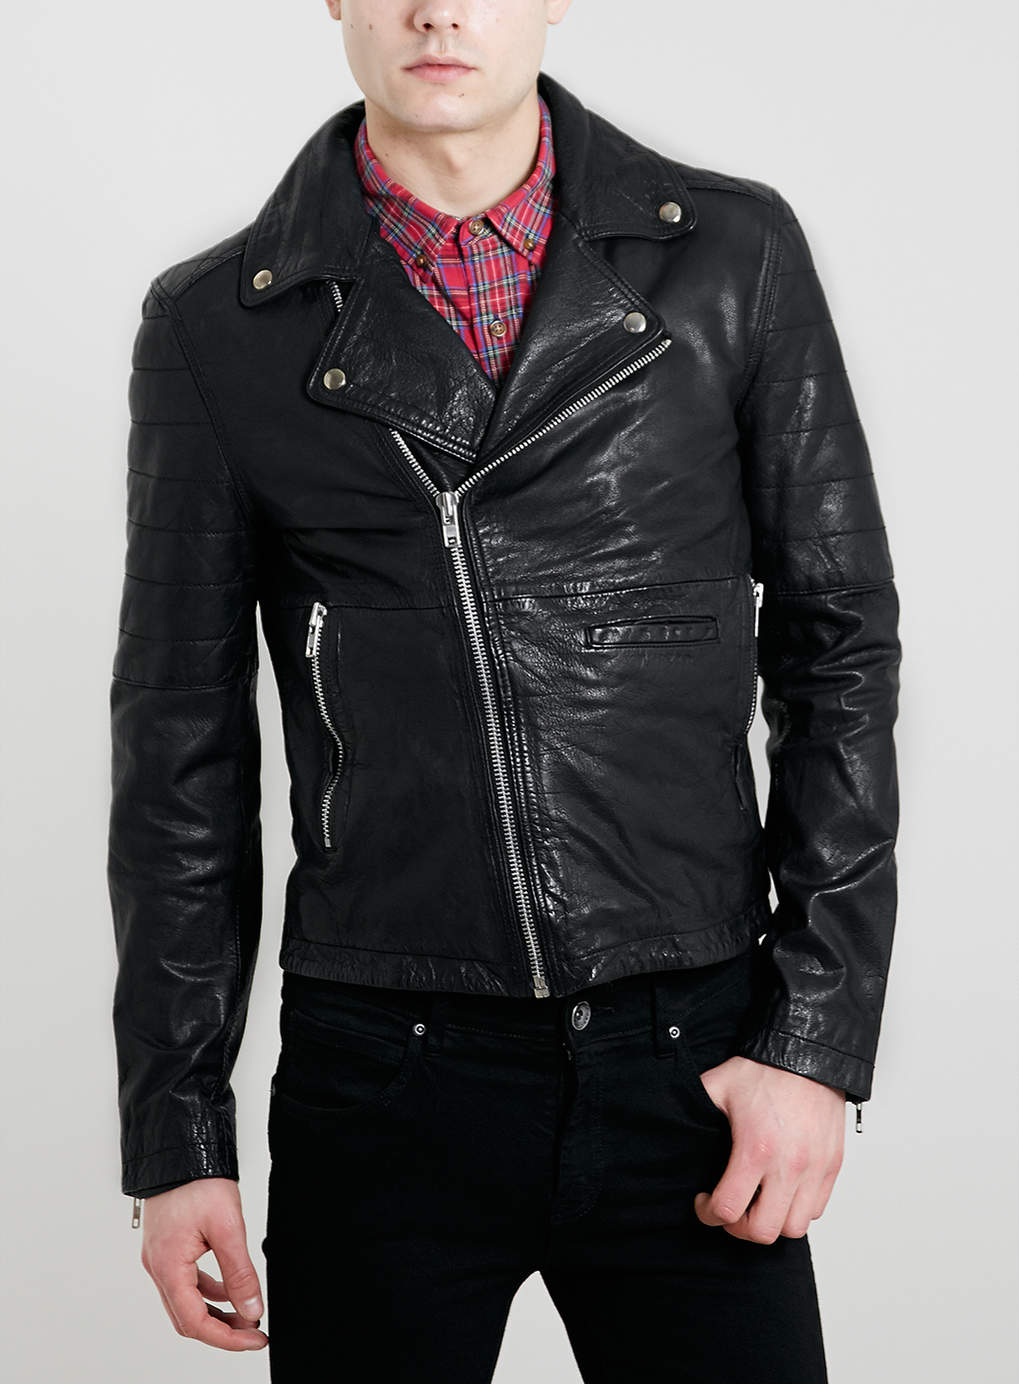 Where to get leather jackets